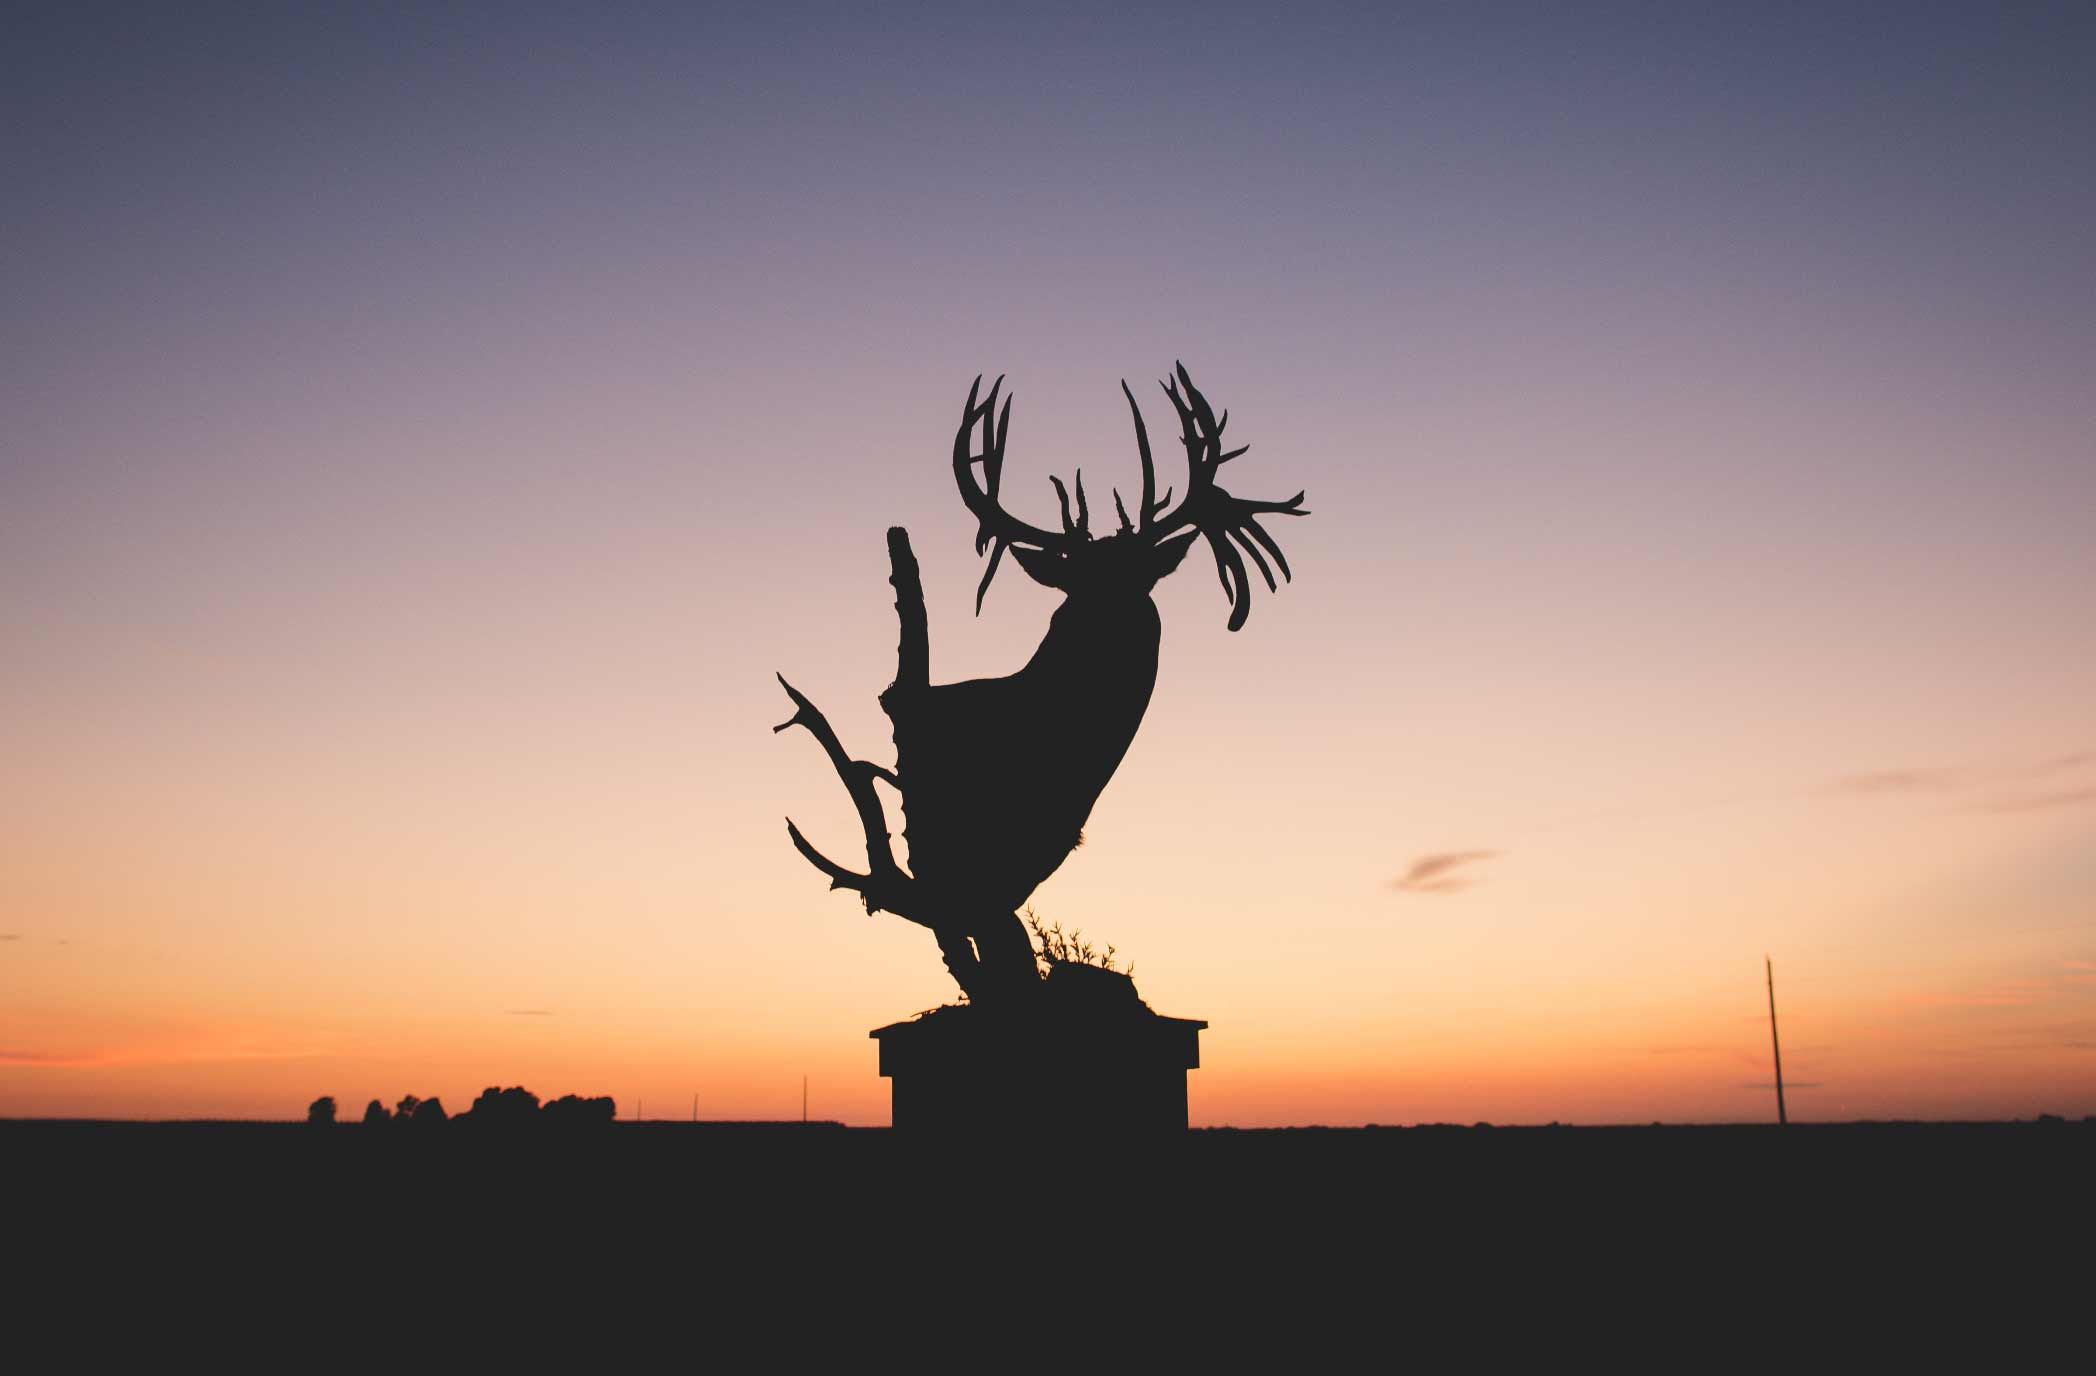 silhouette of a buck trophy against a sunset